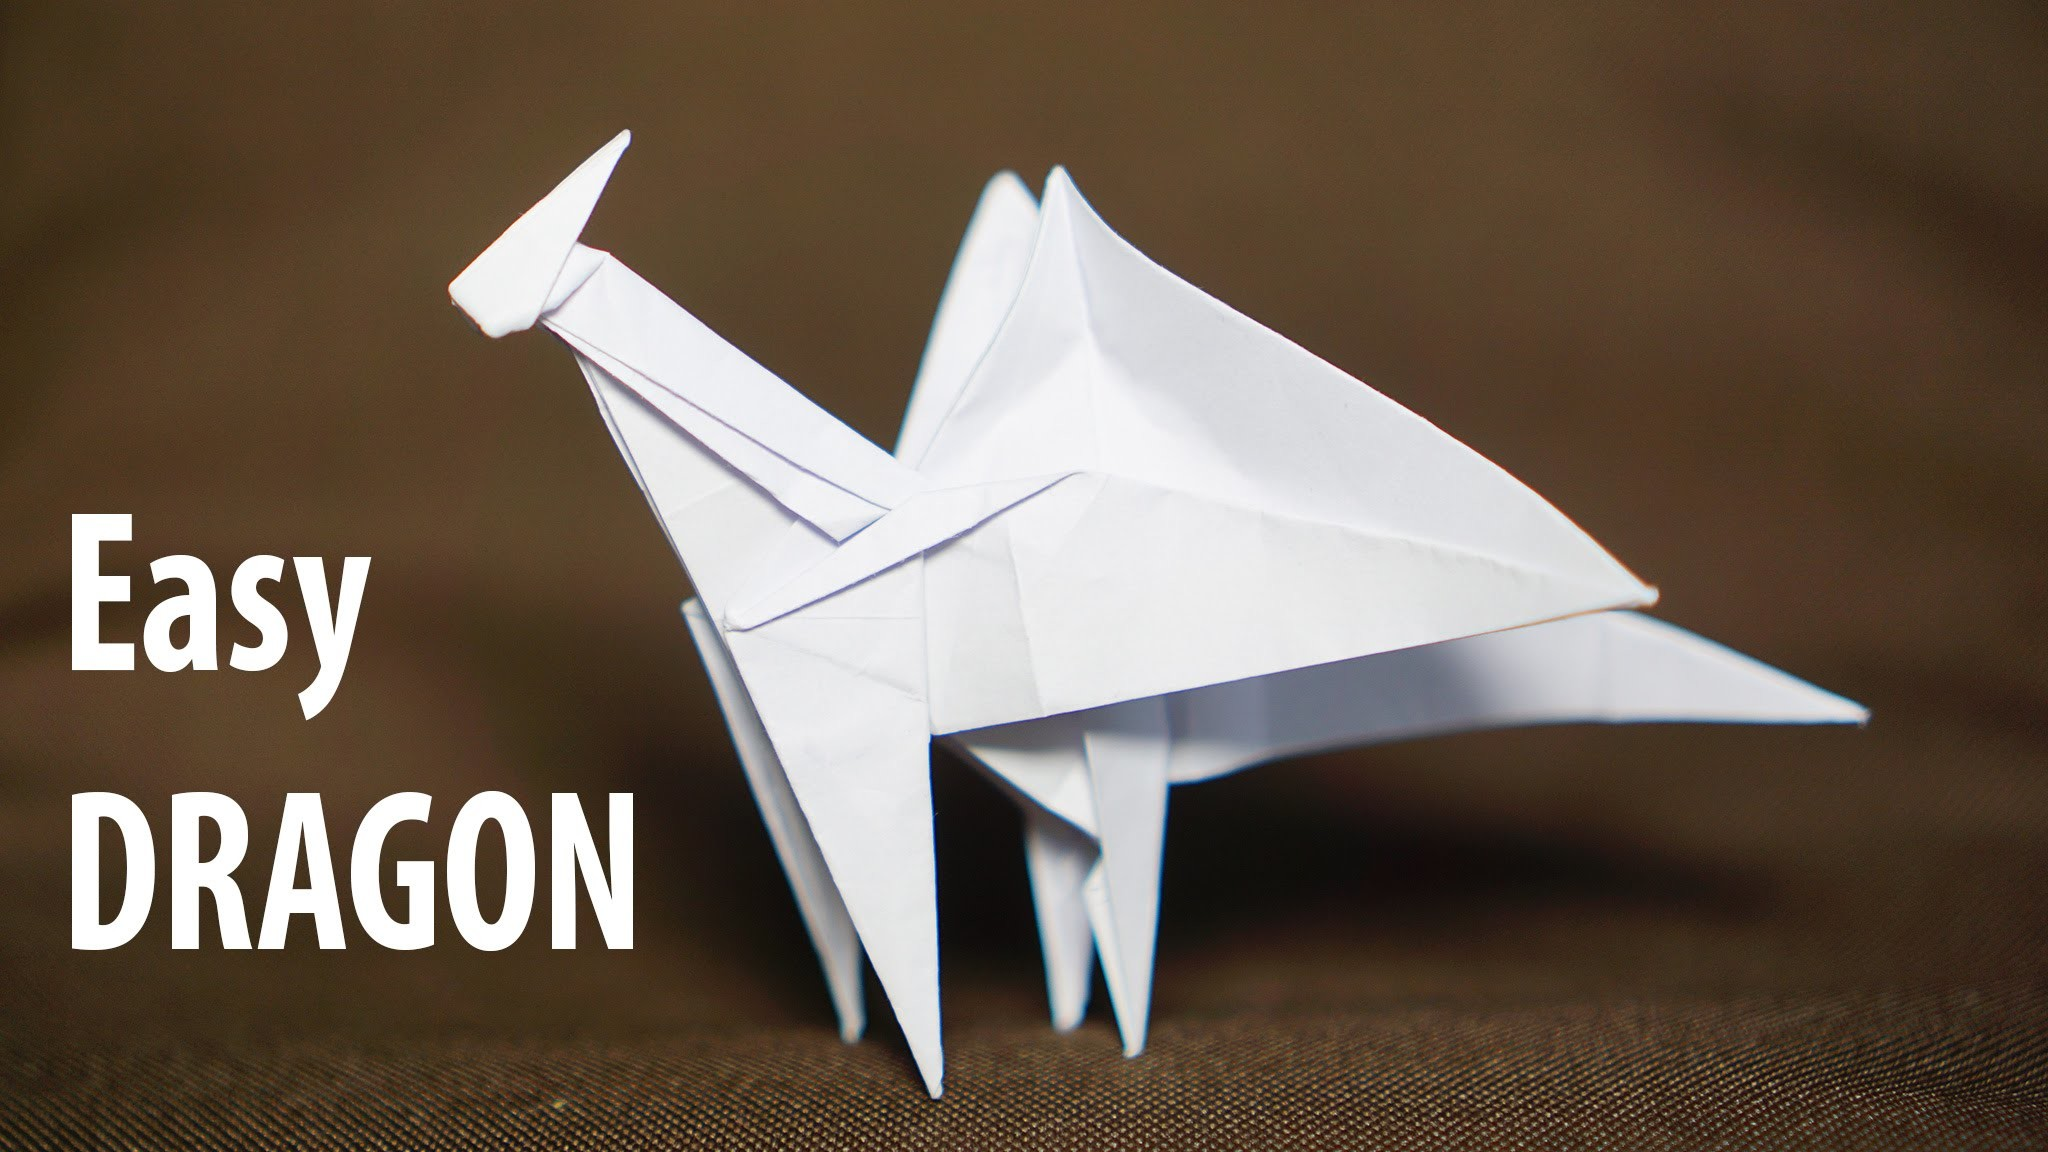 Origami easy Dragon tutorial - DIY (Henry Phạm)